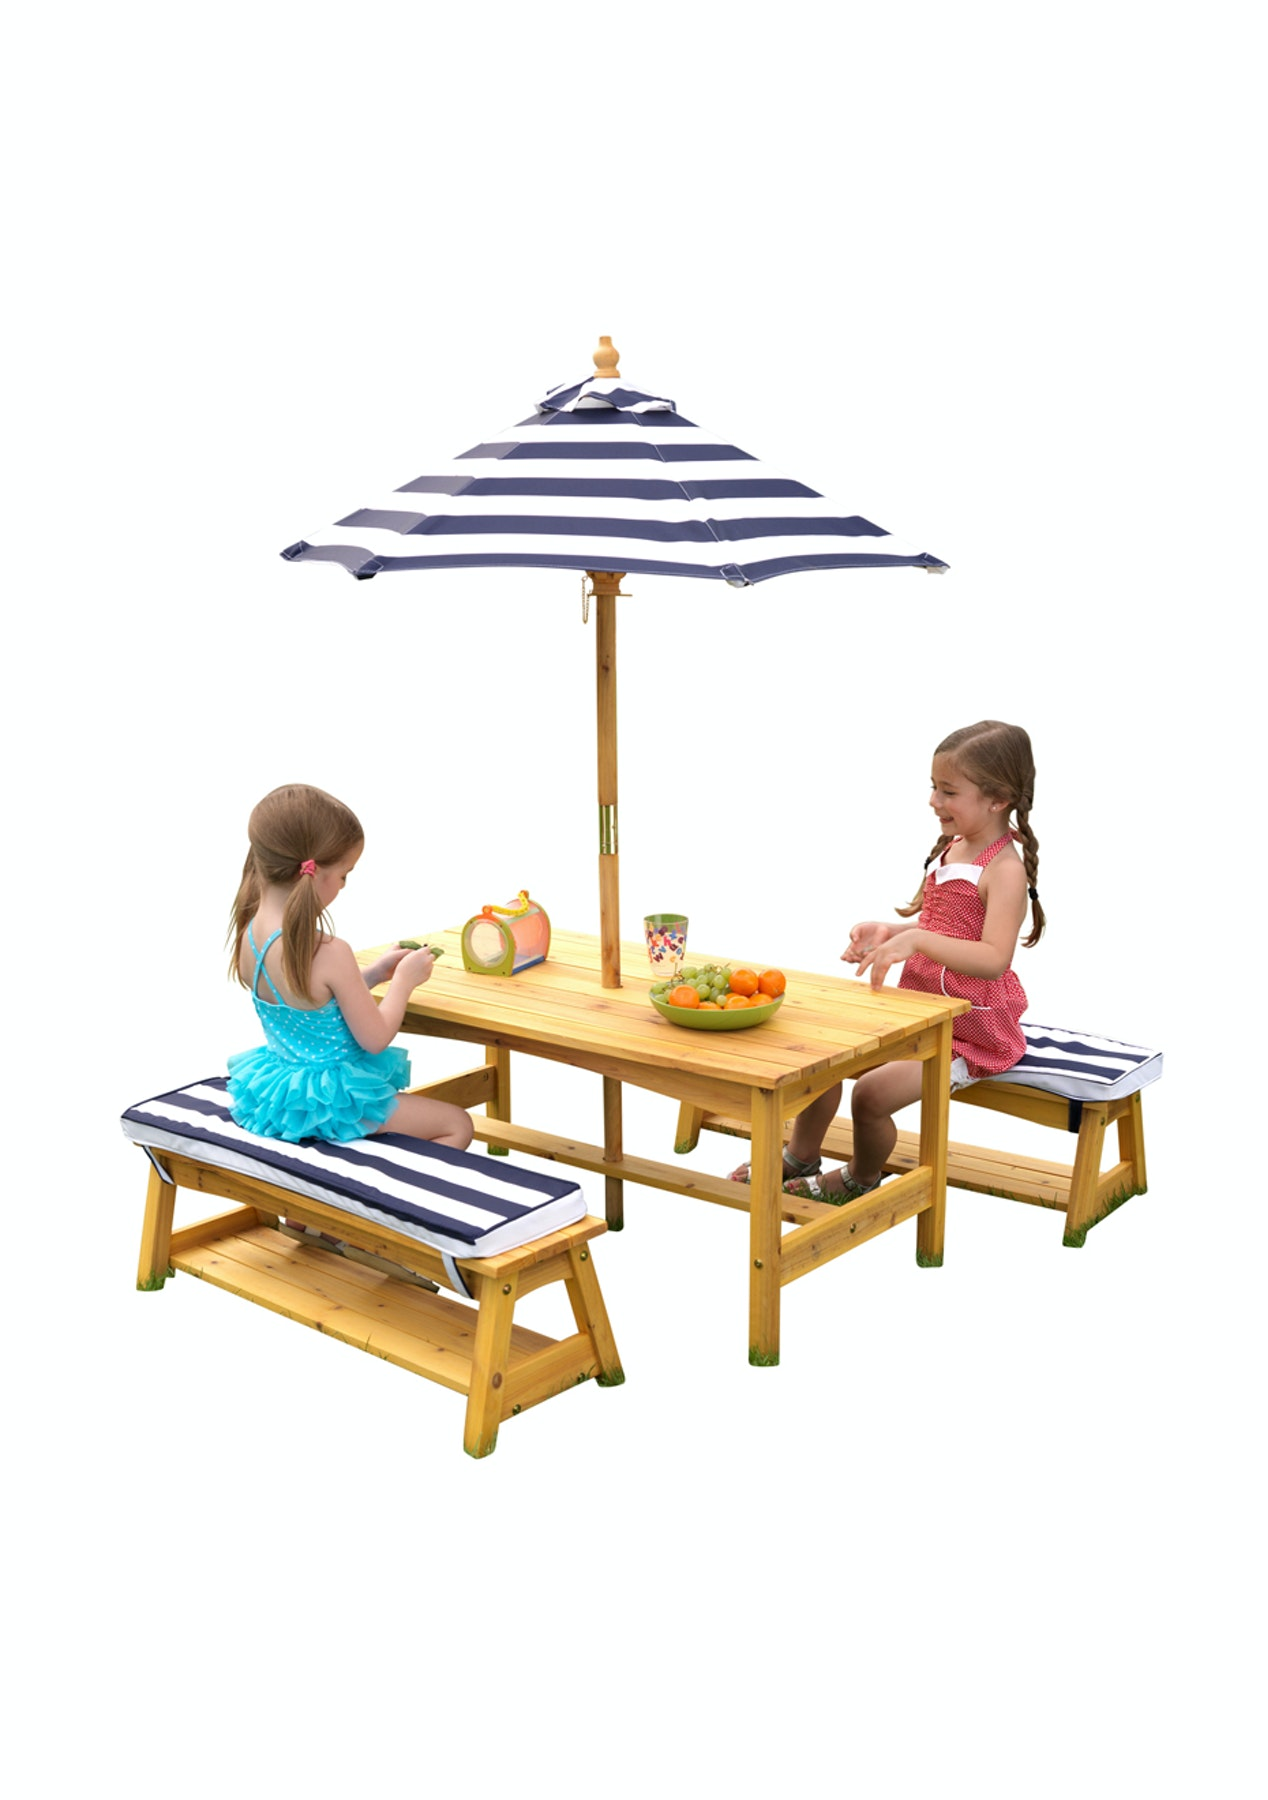 Childrens Outdoor Picnic Table And Bench Seat With Umbrella The